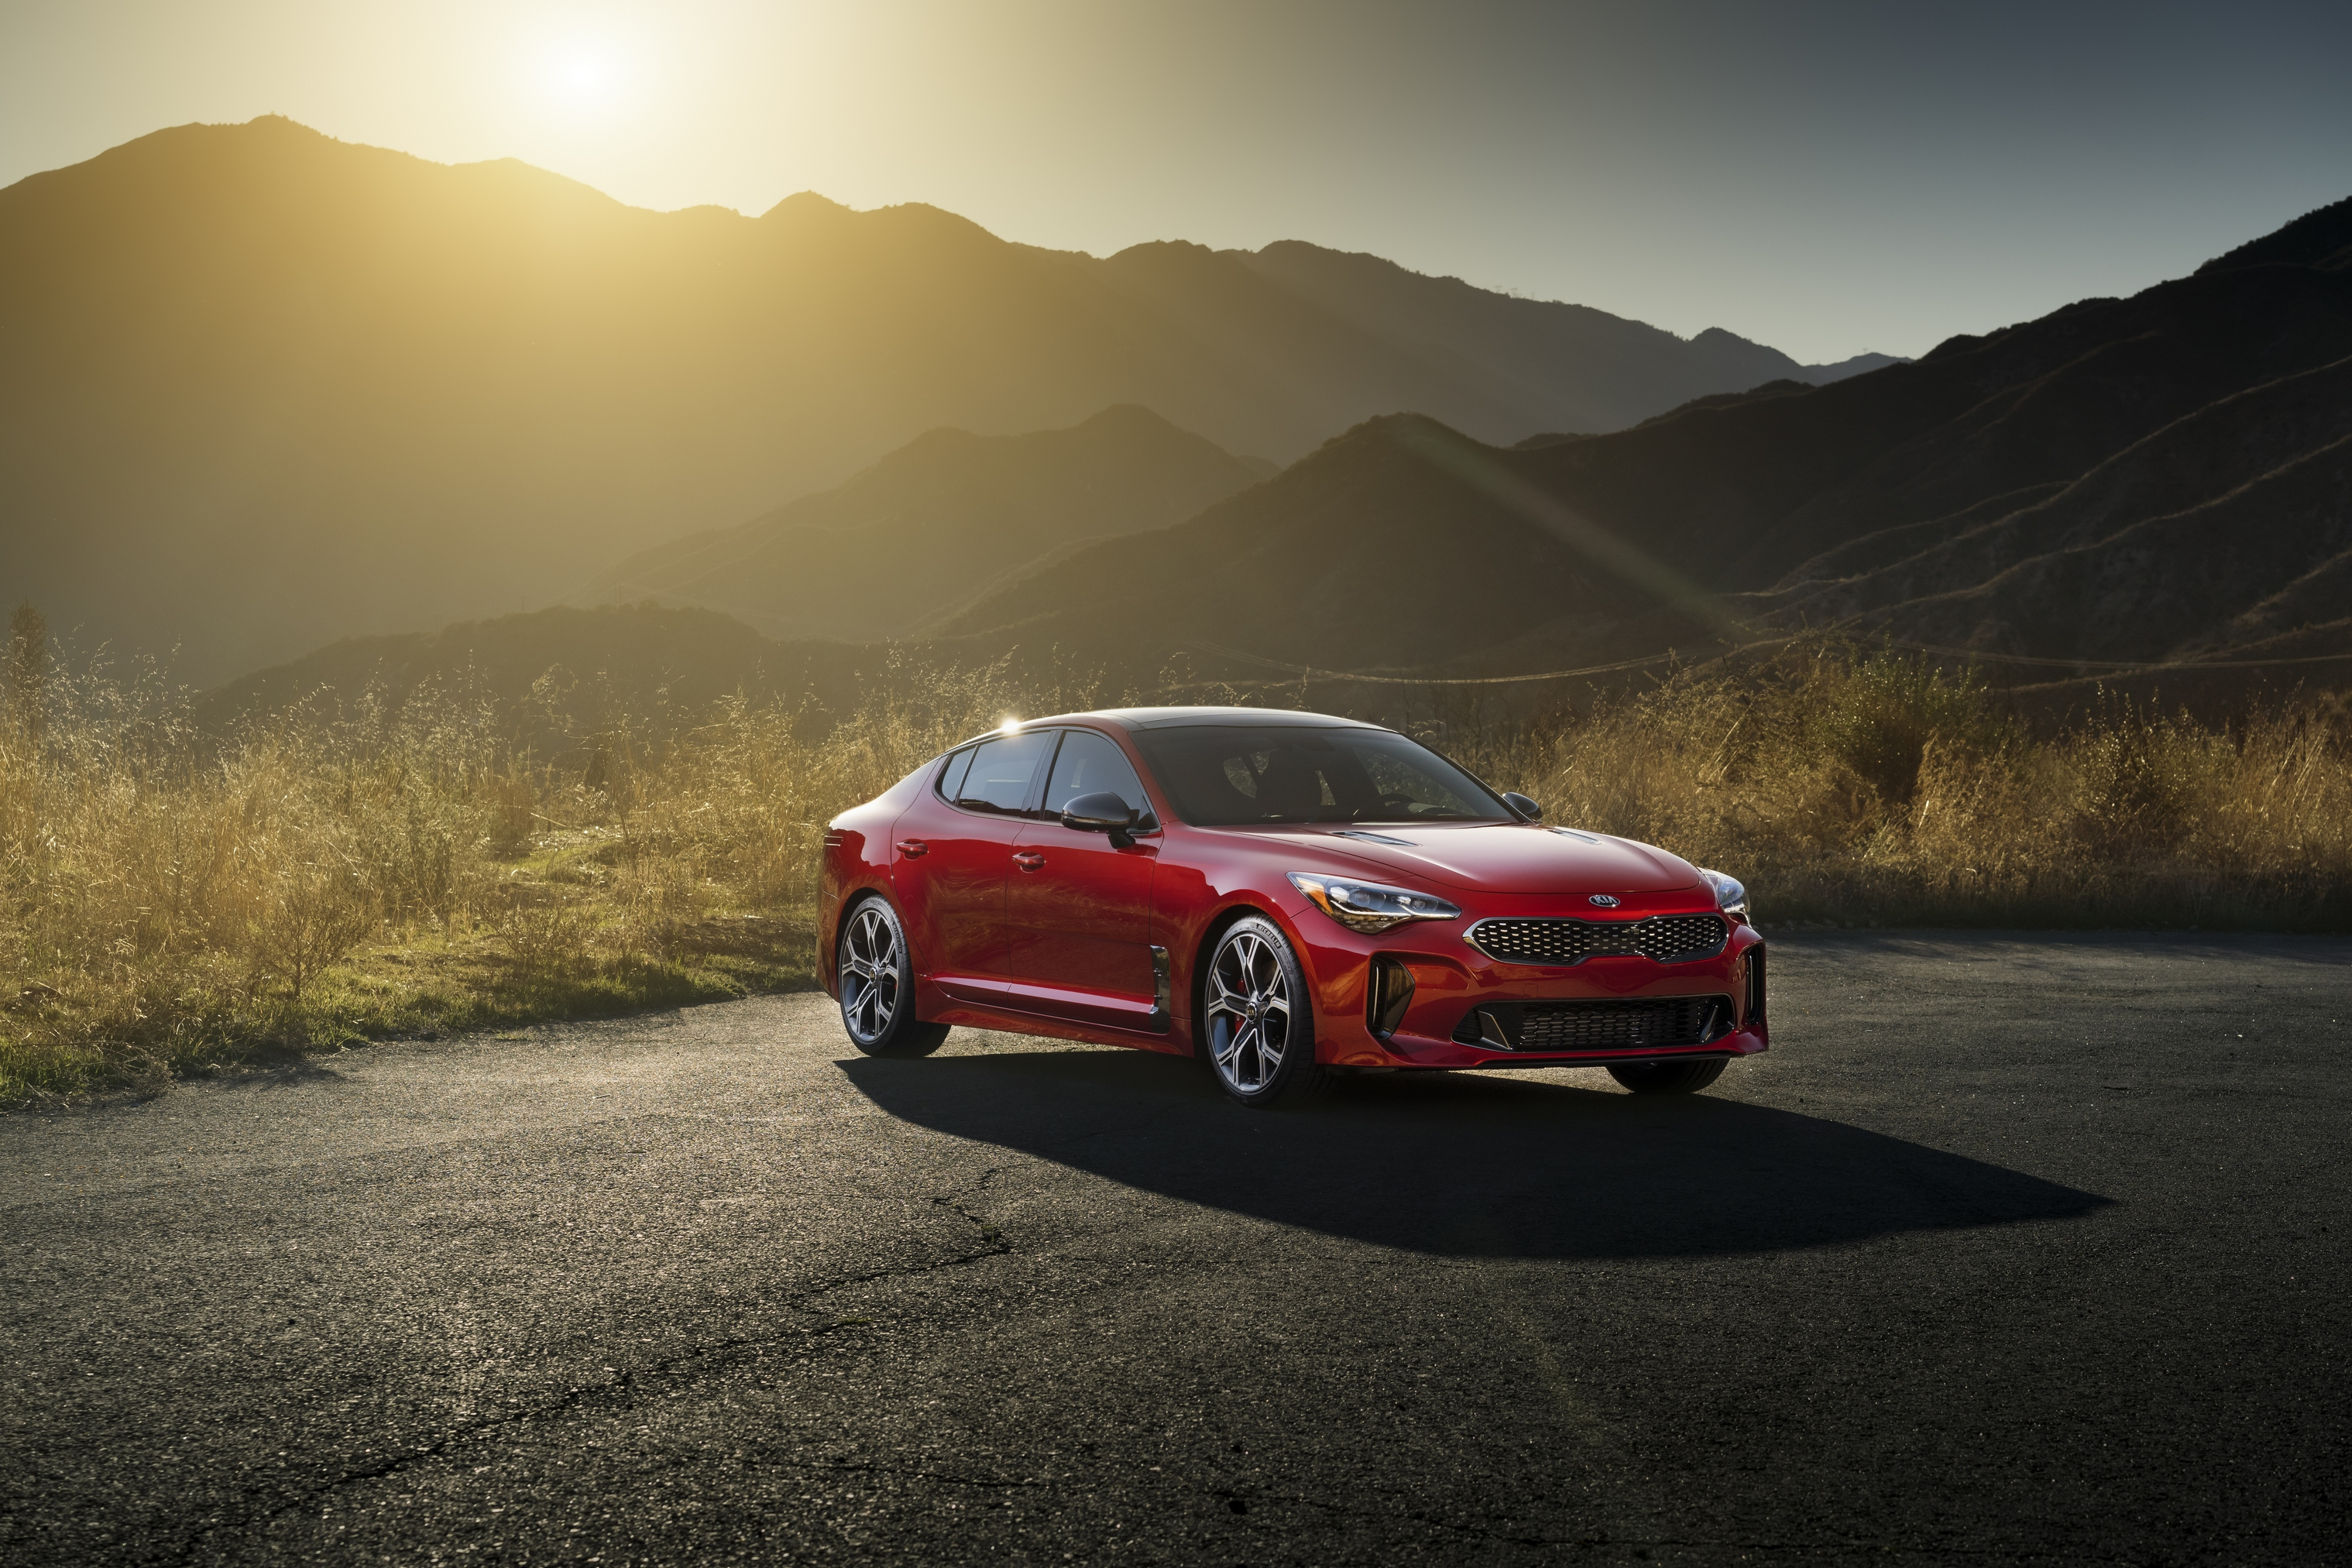 is practical sedan verge show auto cars thumb in of sports stinger sea sizzles kia vrg production detroit the a that vho car